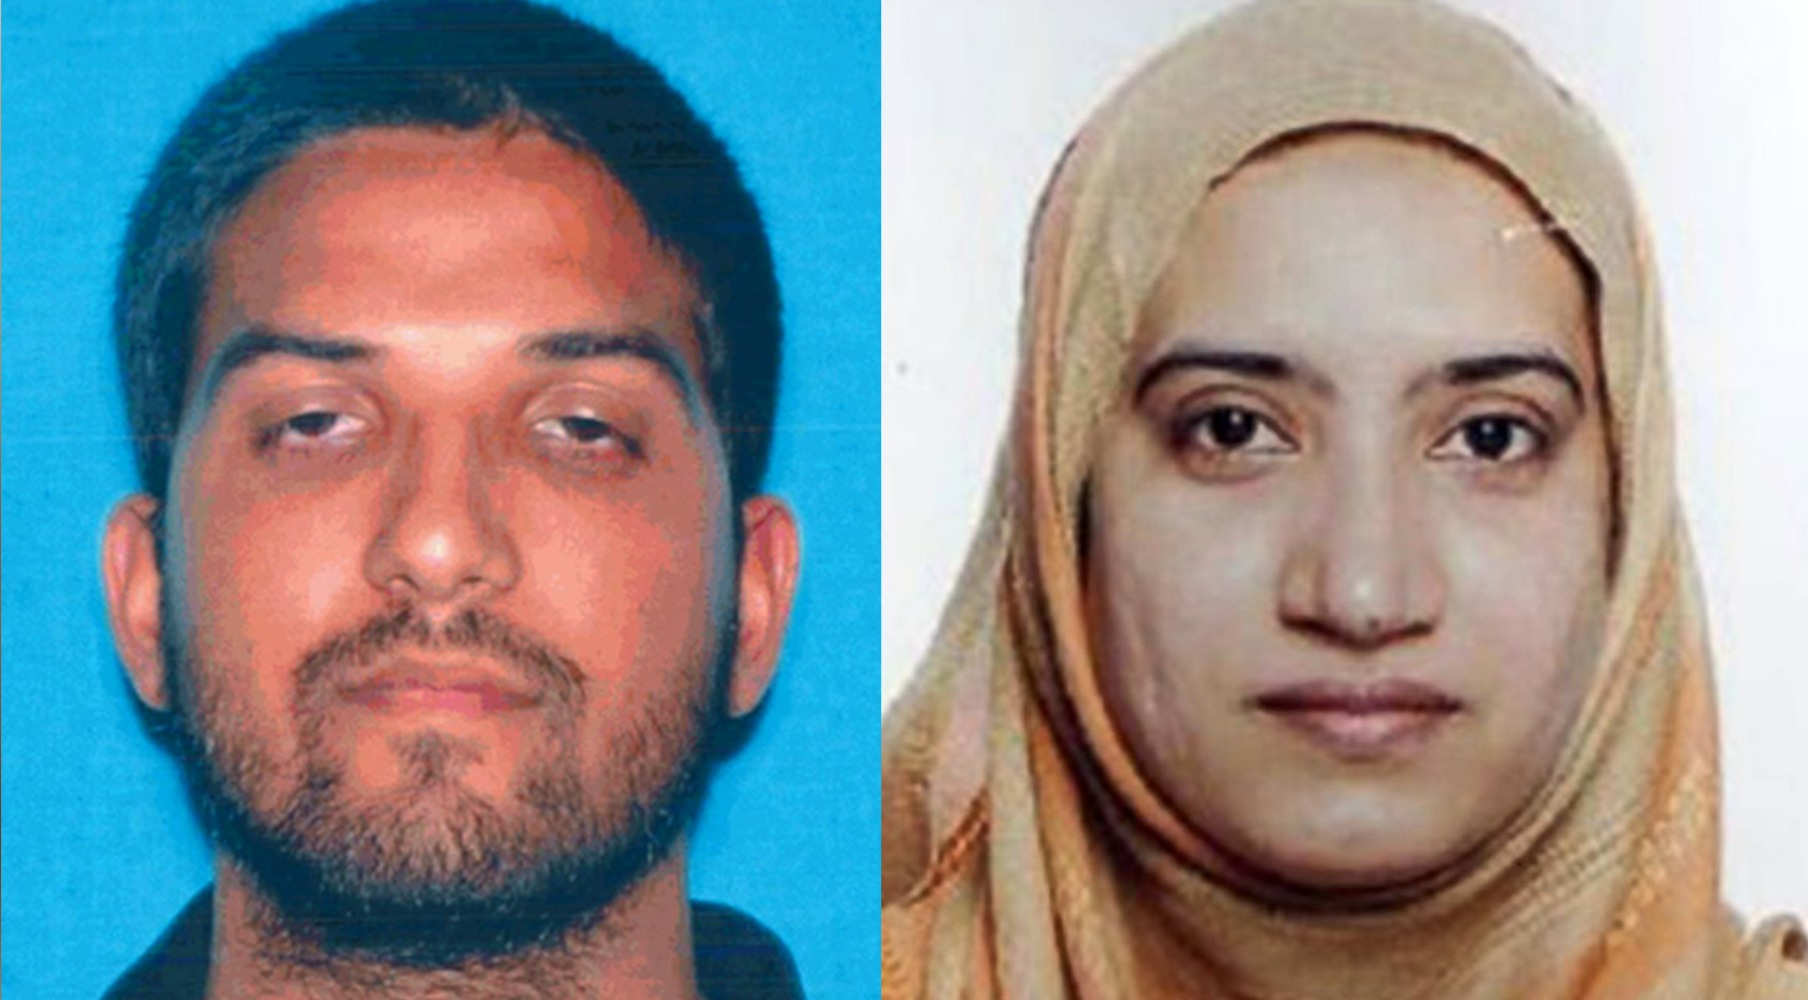 New Photo, Details Emerge About Woman Shooter in San Bernardino ...